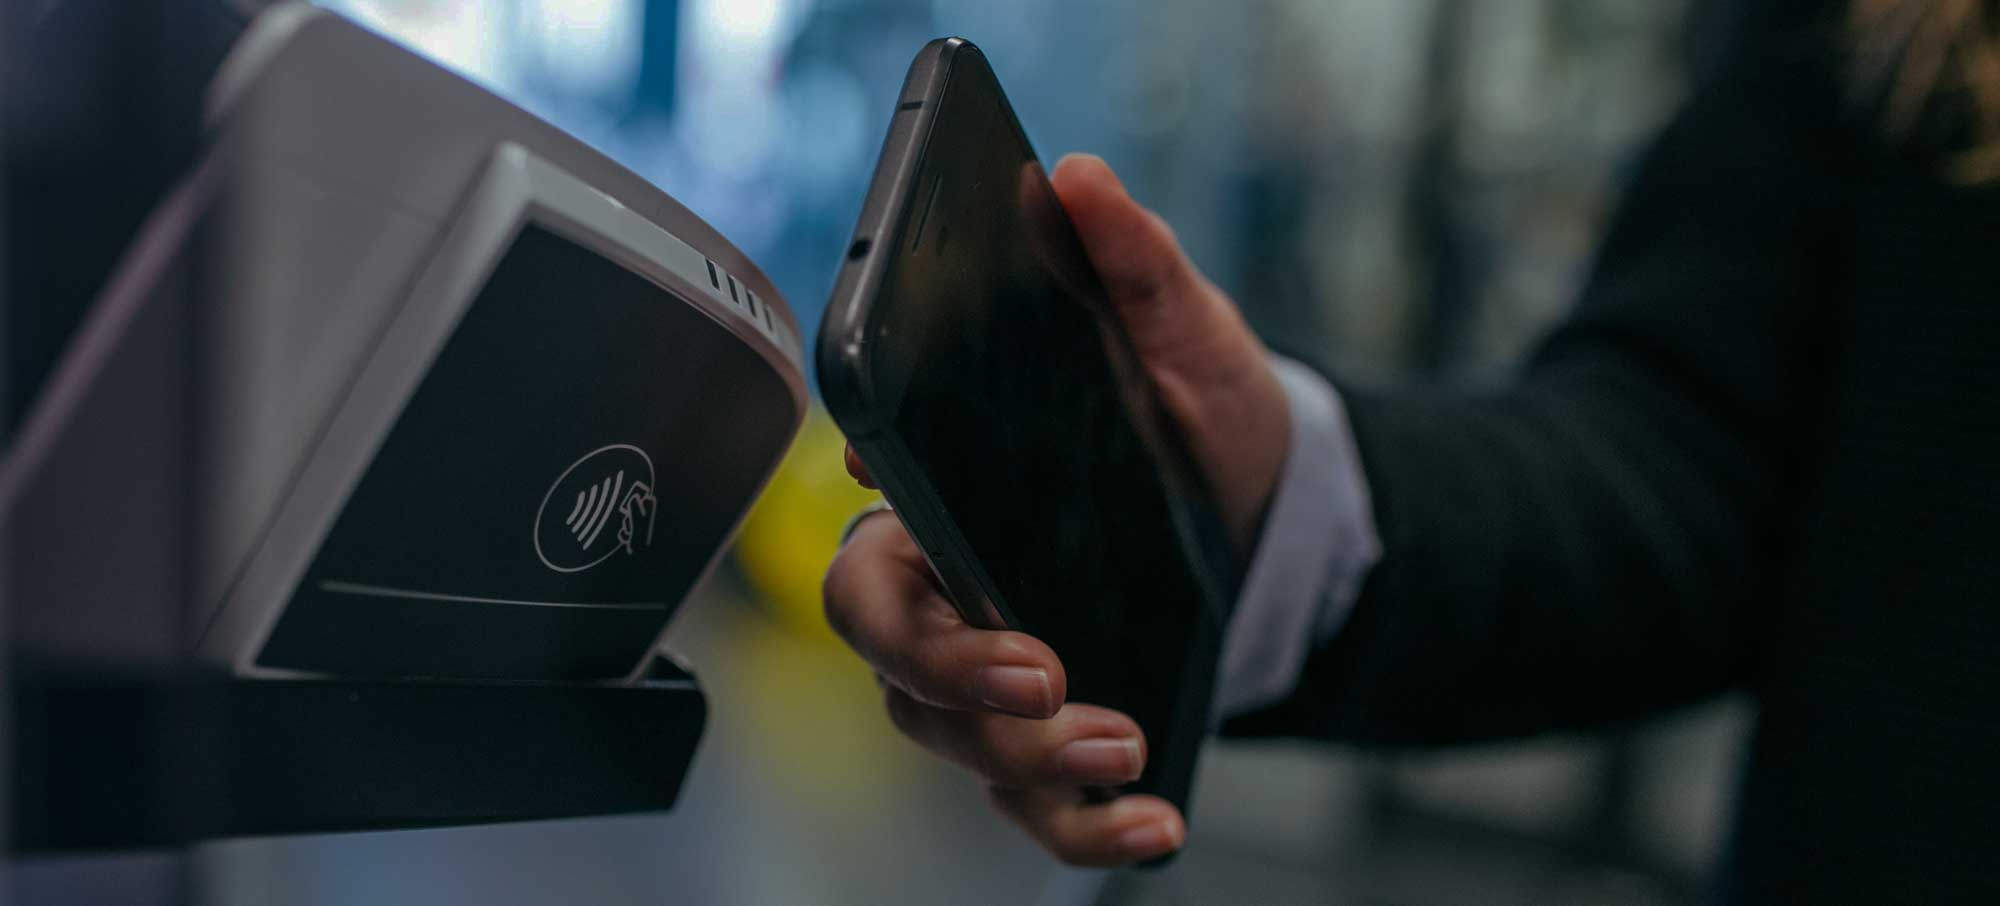 Future of Mobile Payments – Where Next?